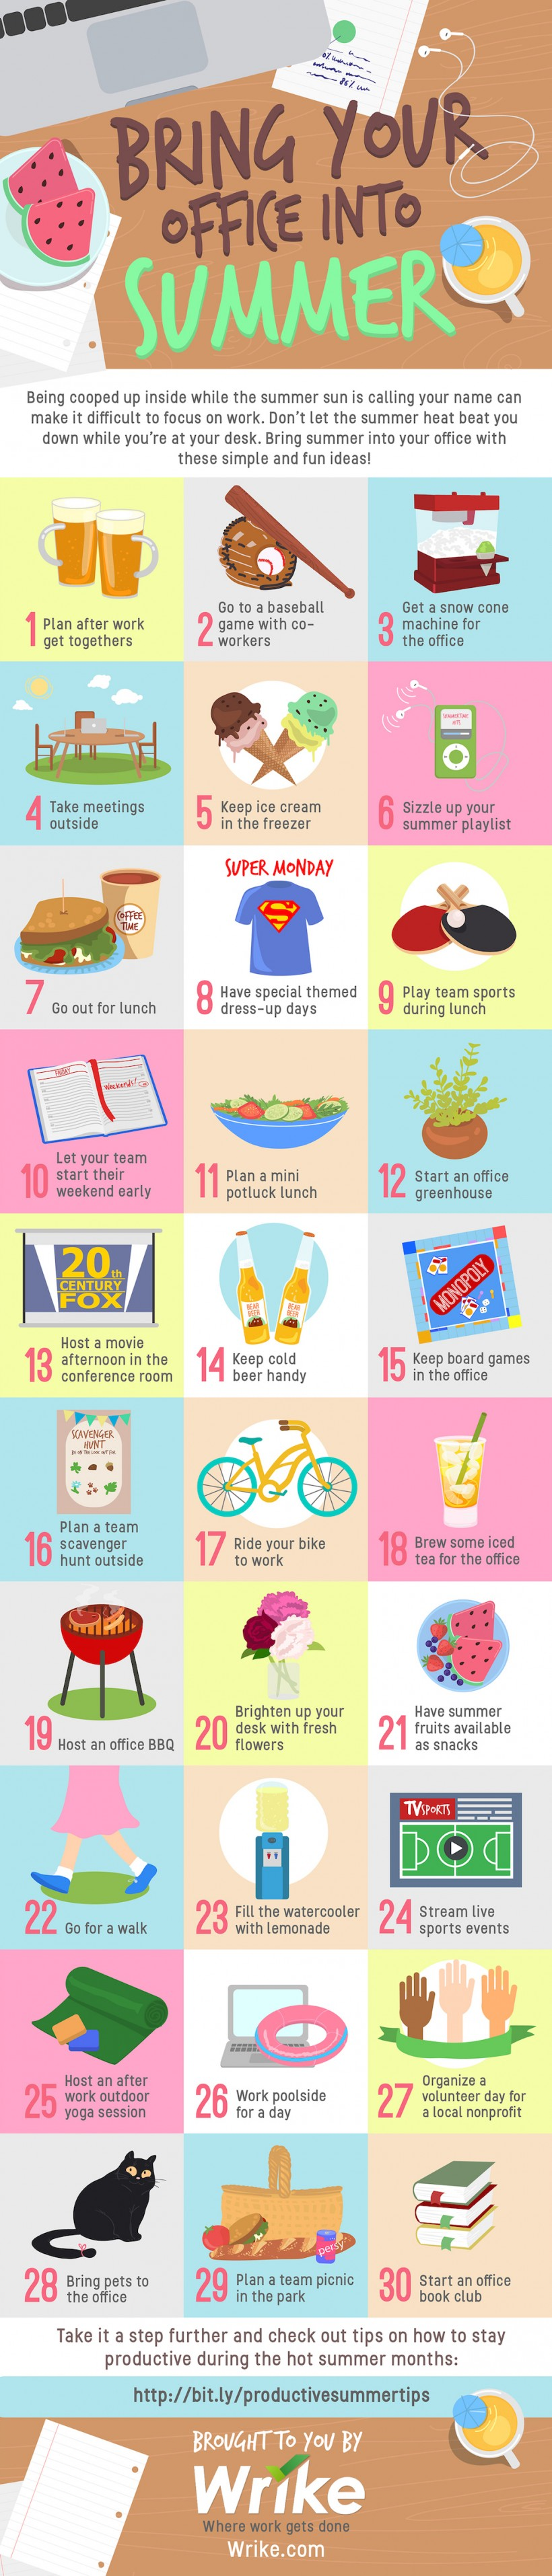 How to Enjoy Summer in the Office (#Infographic)